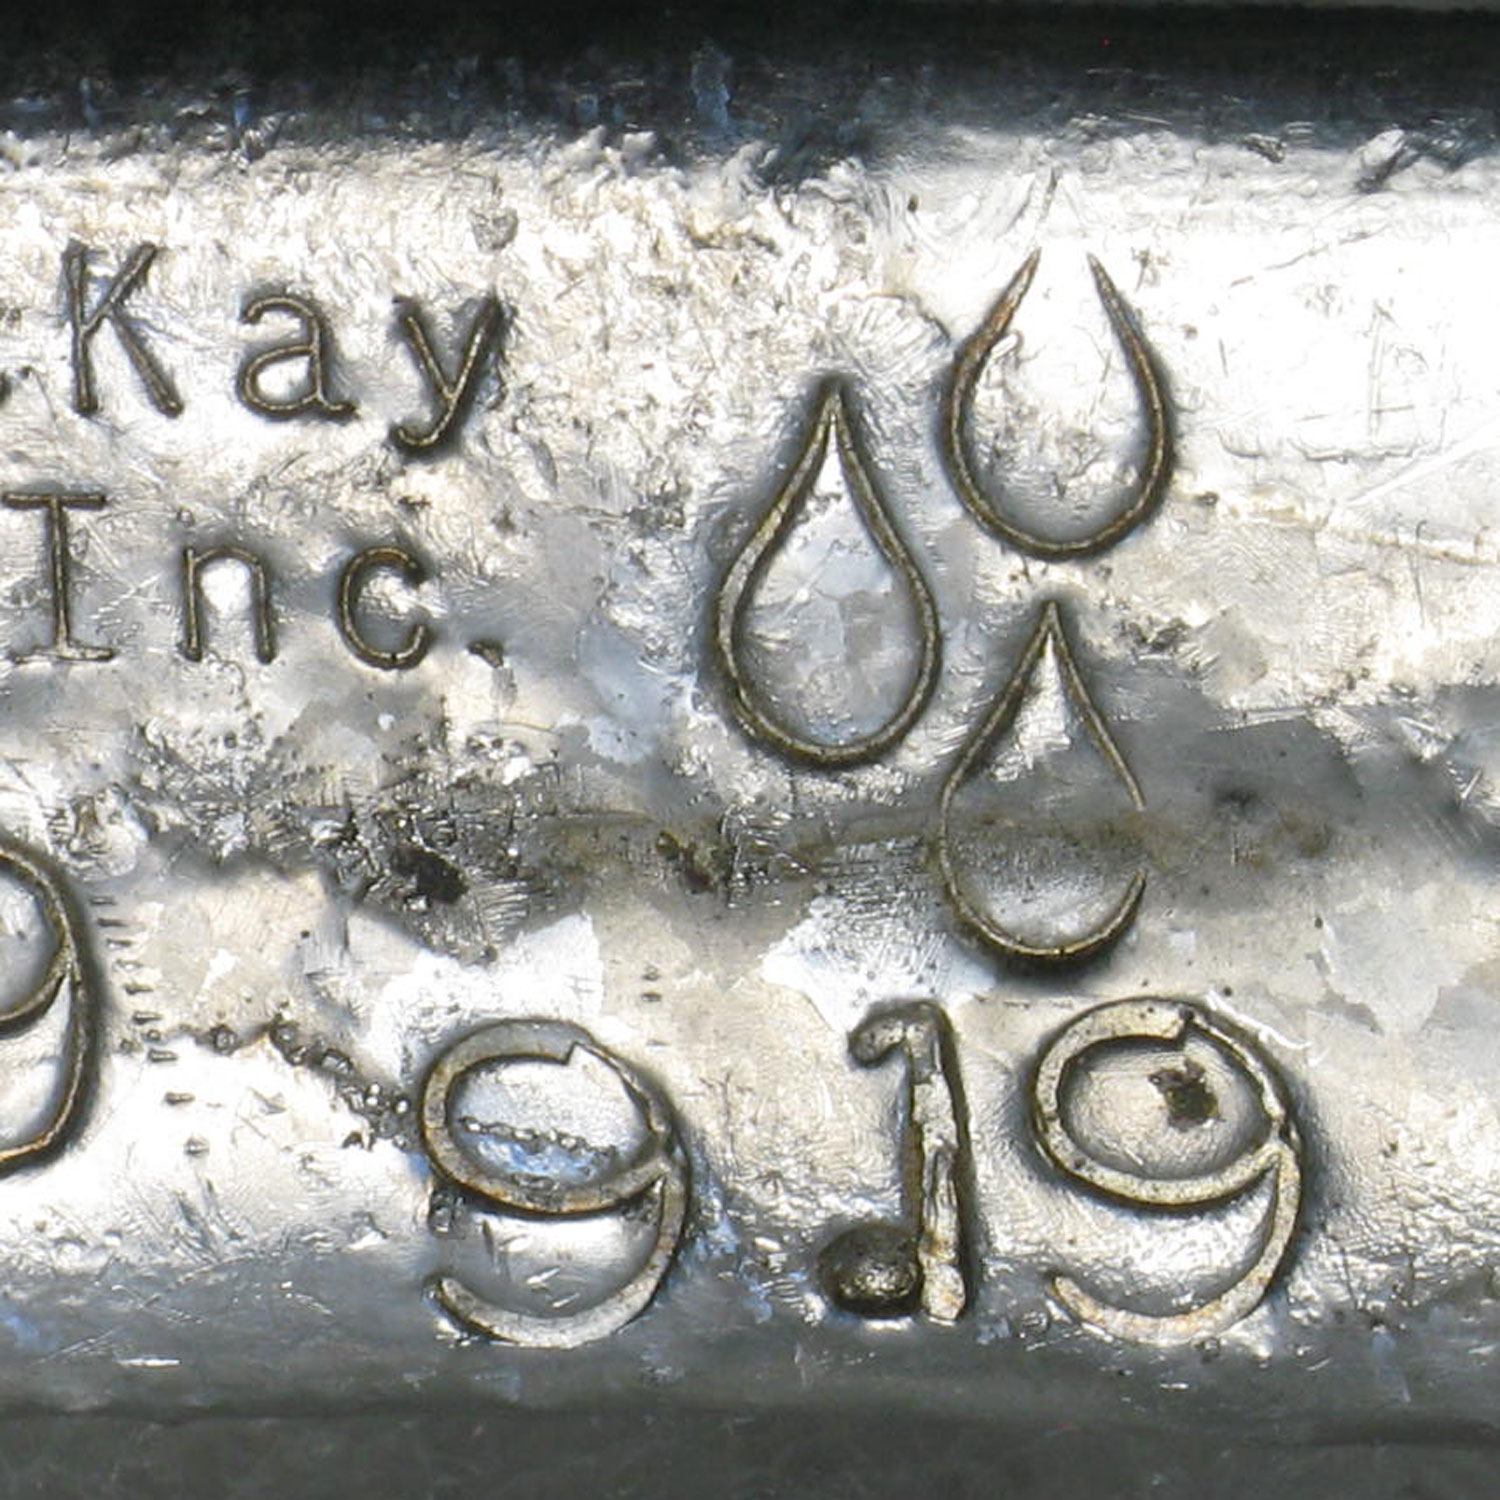 9.19 oz Silver Bar - B. R. MacKay & Sons